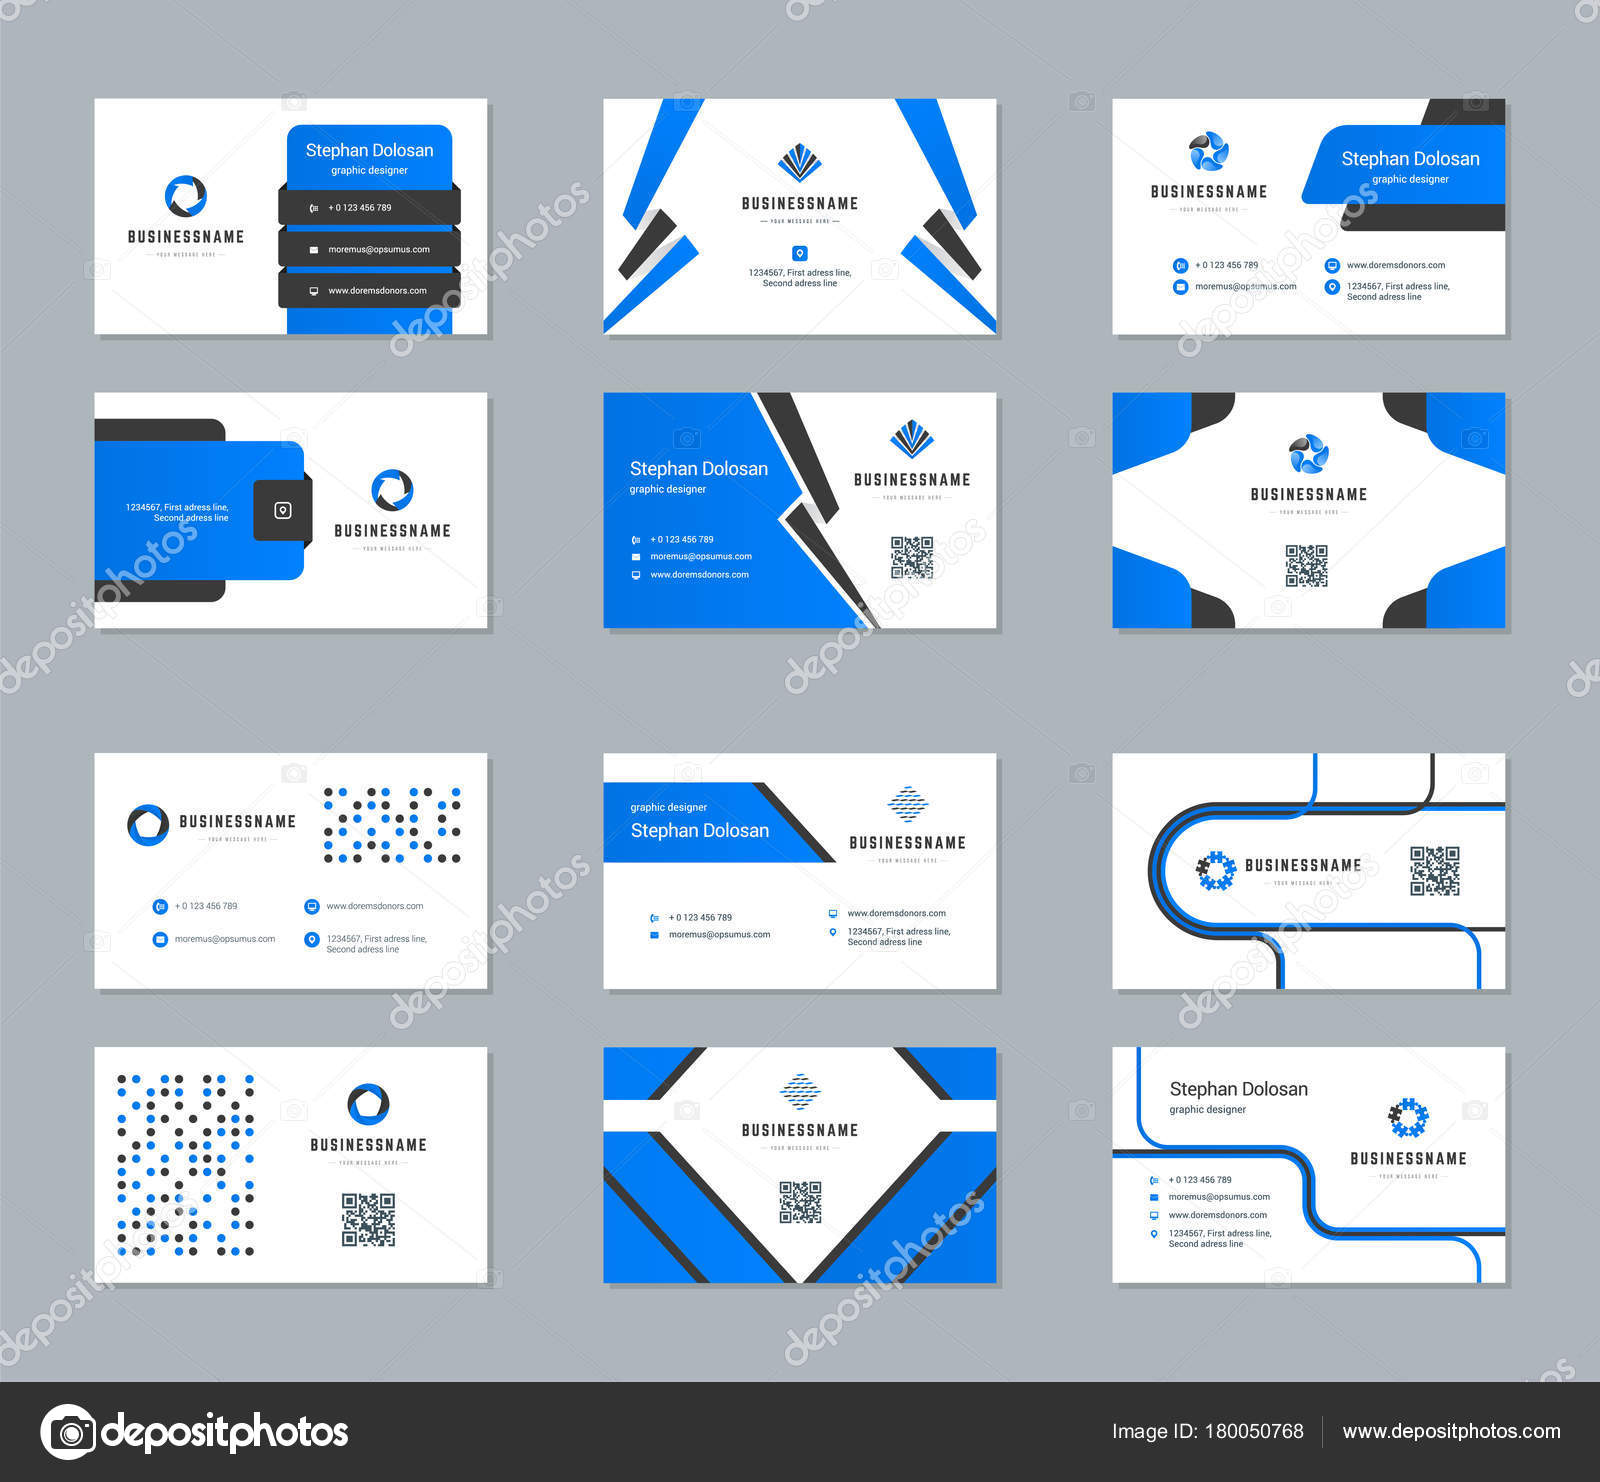 Business cards design templates set stock vector vikasuh 180050768 business cards design templates set abstract modern corporate branding style vector illustration two sides with logo trendy colors background colourmoves